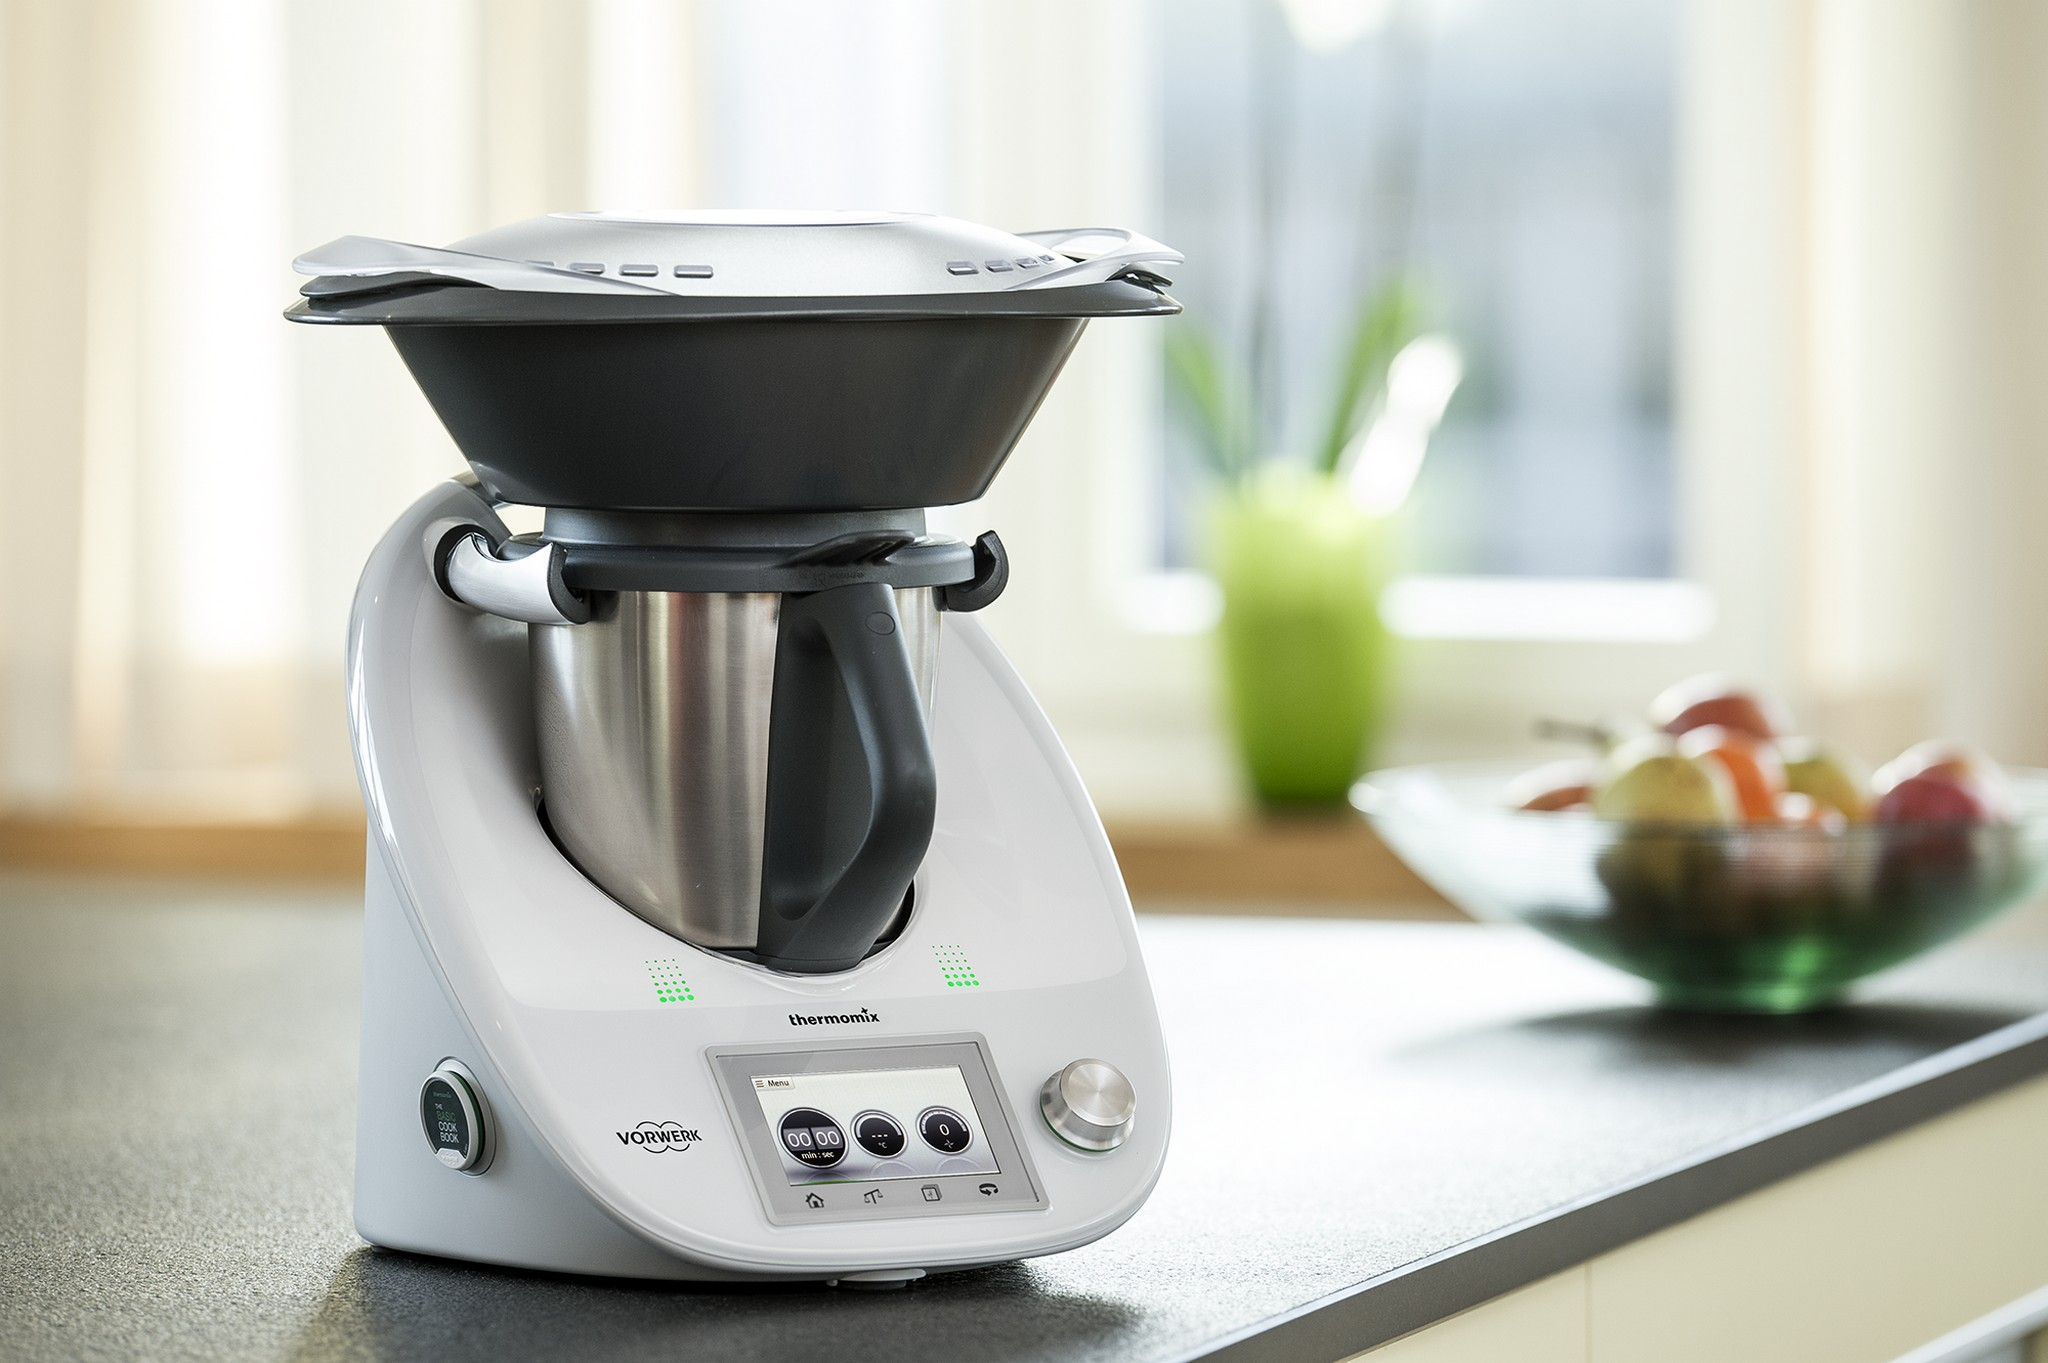 thermomix tm5 model thermomix   all in one kitchen appliance   wholesome foodstore  rh   wholesomefoodstore com au